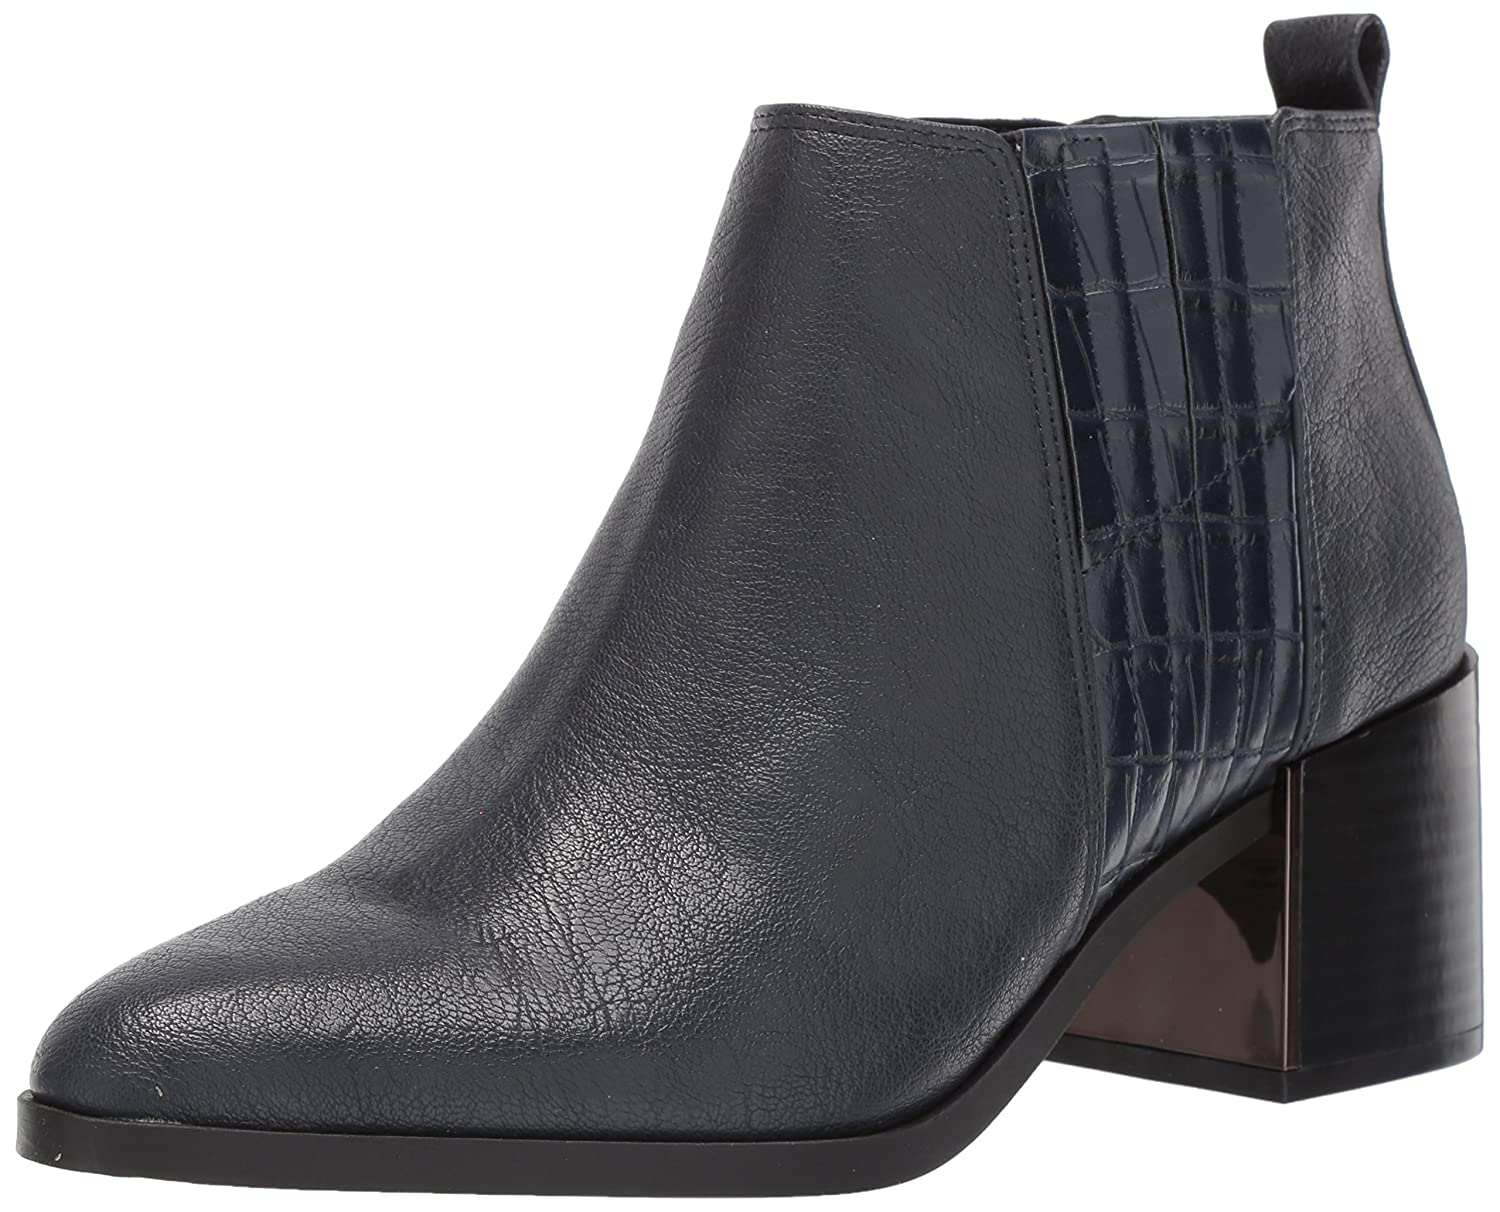 Nine West Women's Walburga Synthetic Ankle Boot B071HV16F6 9.5 B(M) US|Navy/Navy Synthetic